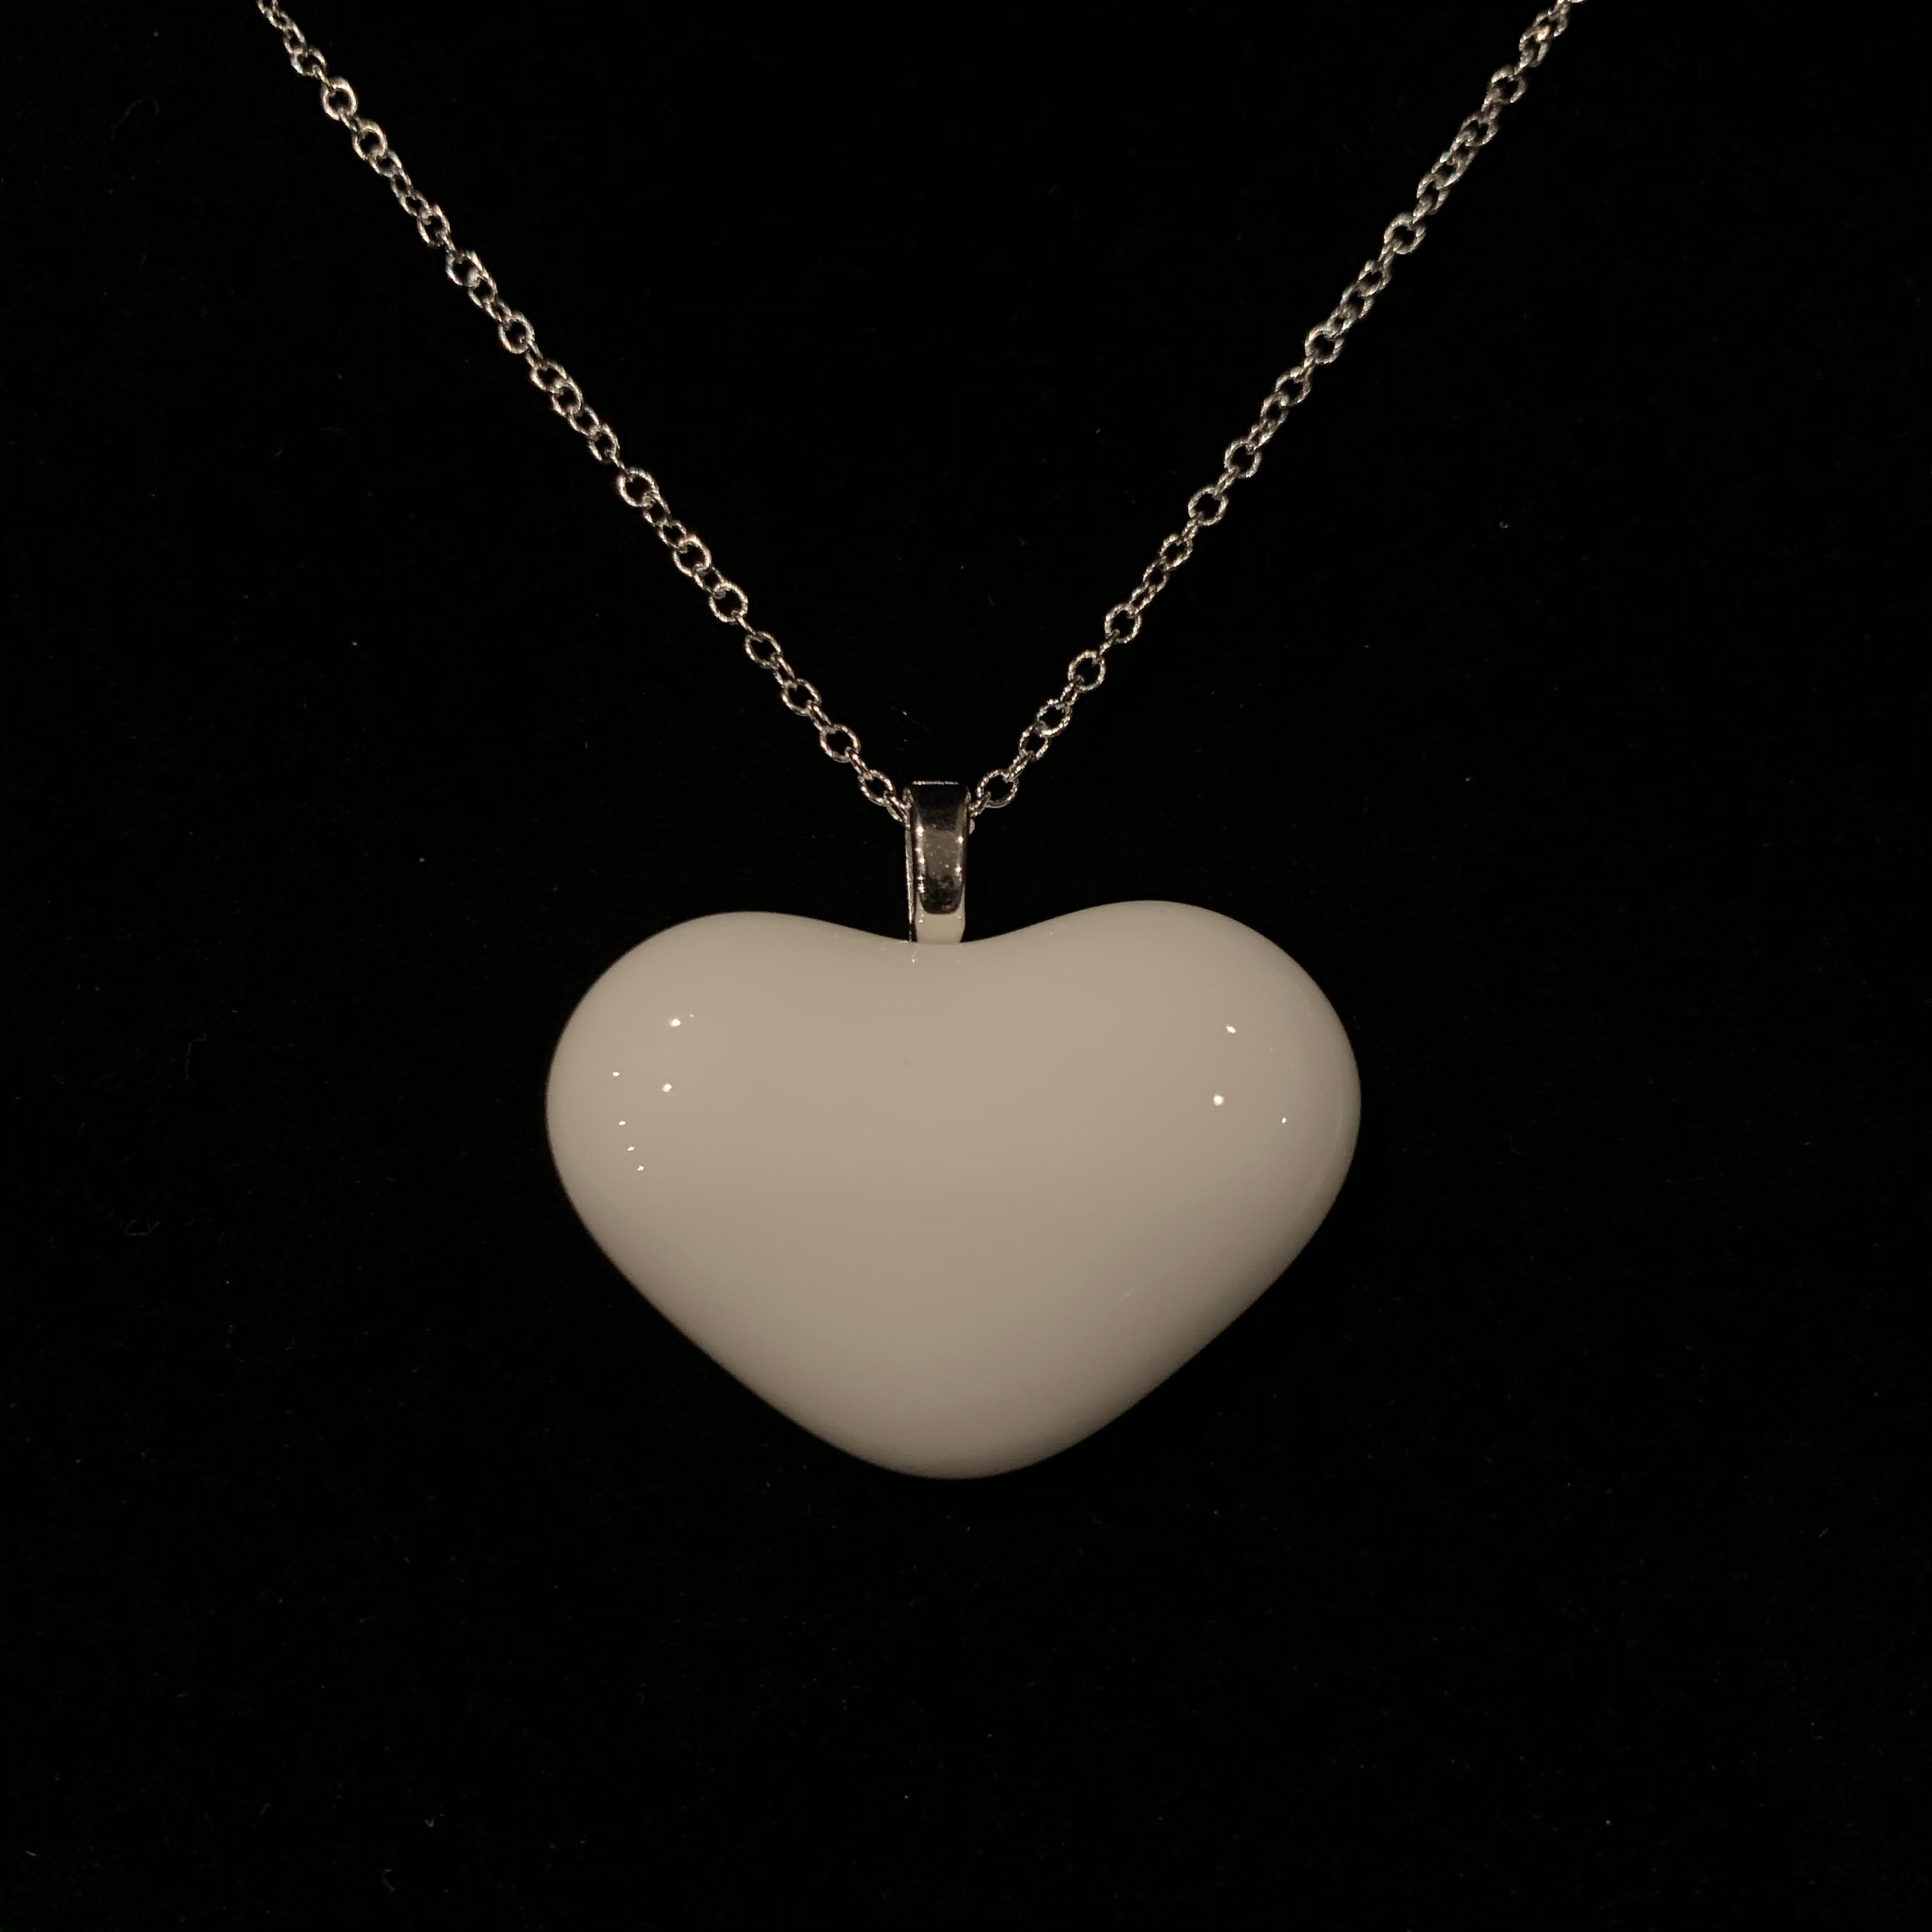 White Heart Glass Pendant Necklace